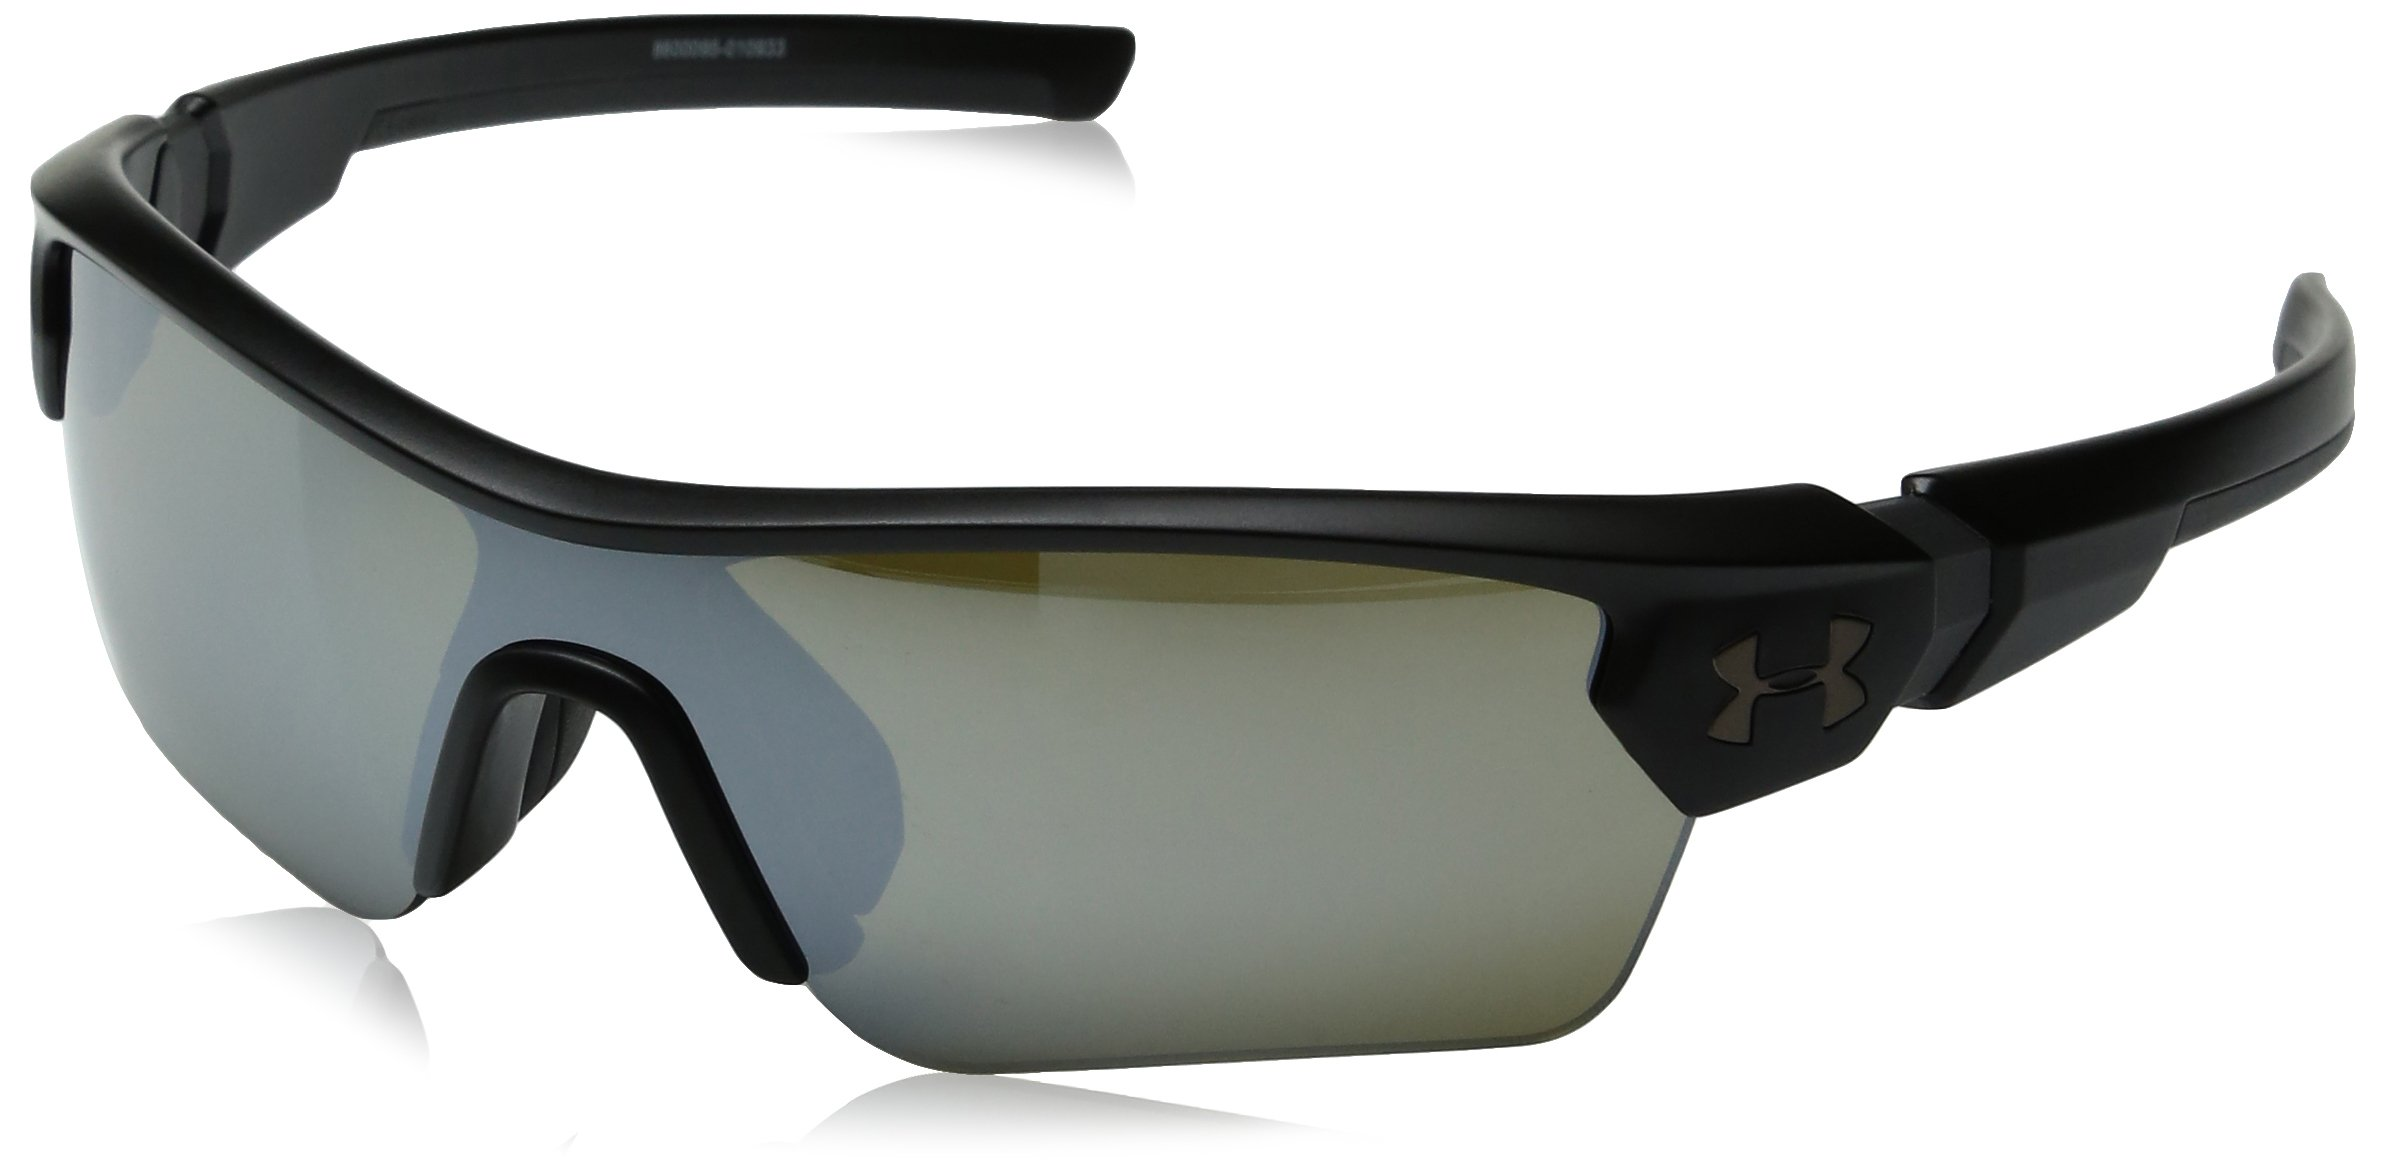 Under Armour Menace Youth Sunglasses, 58 mm, Black / Game Day Lens by Under Armour